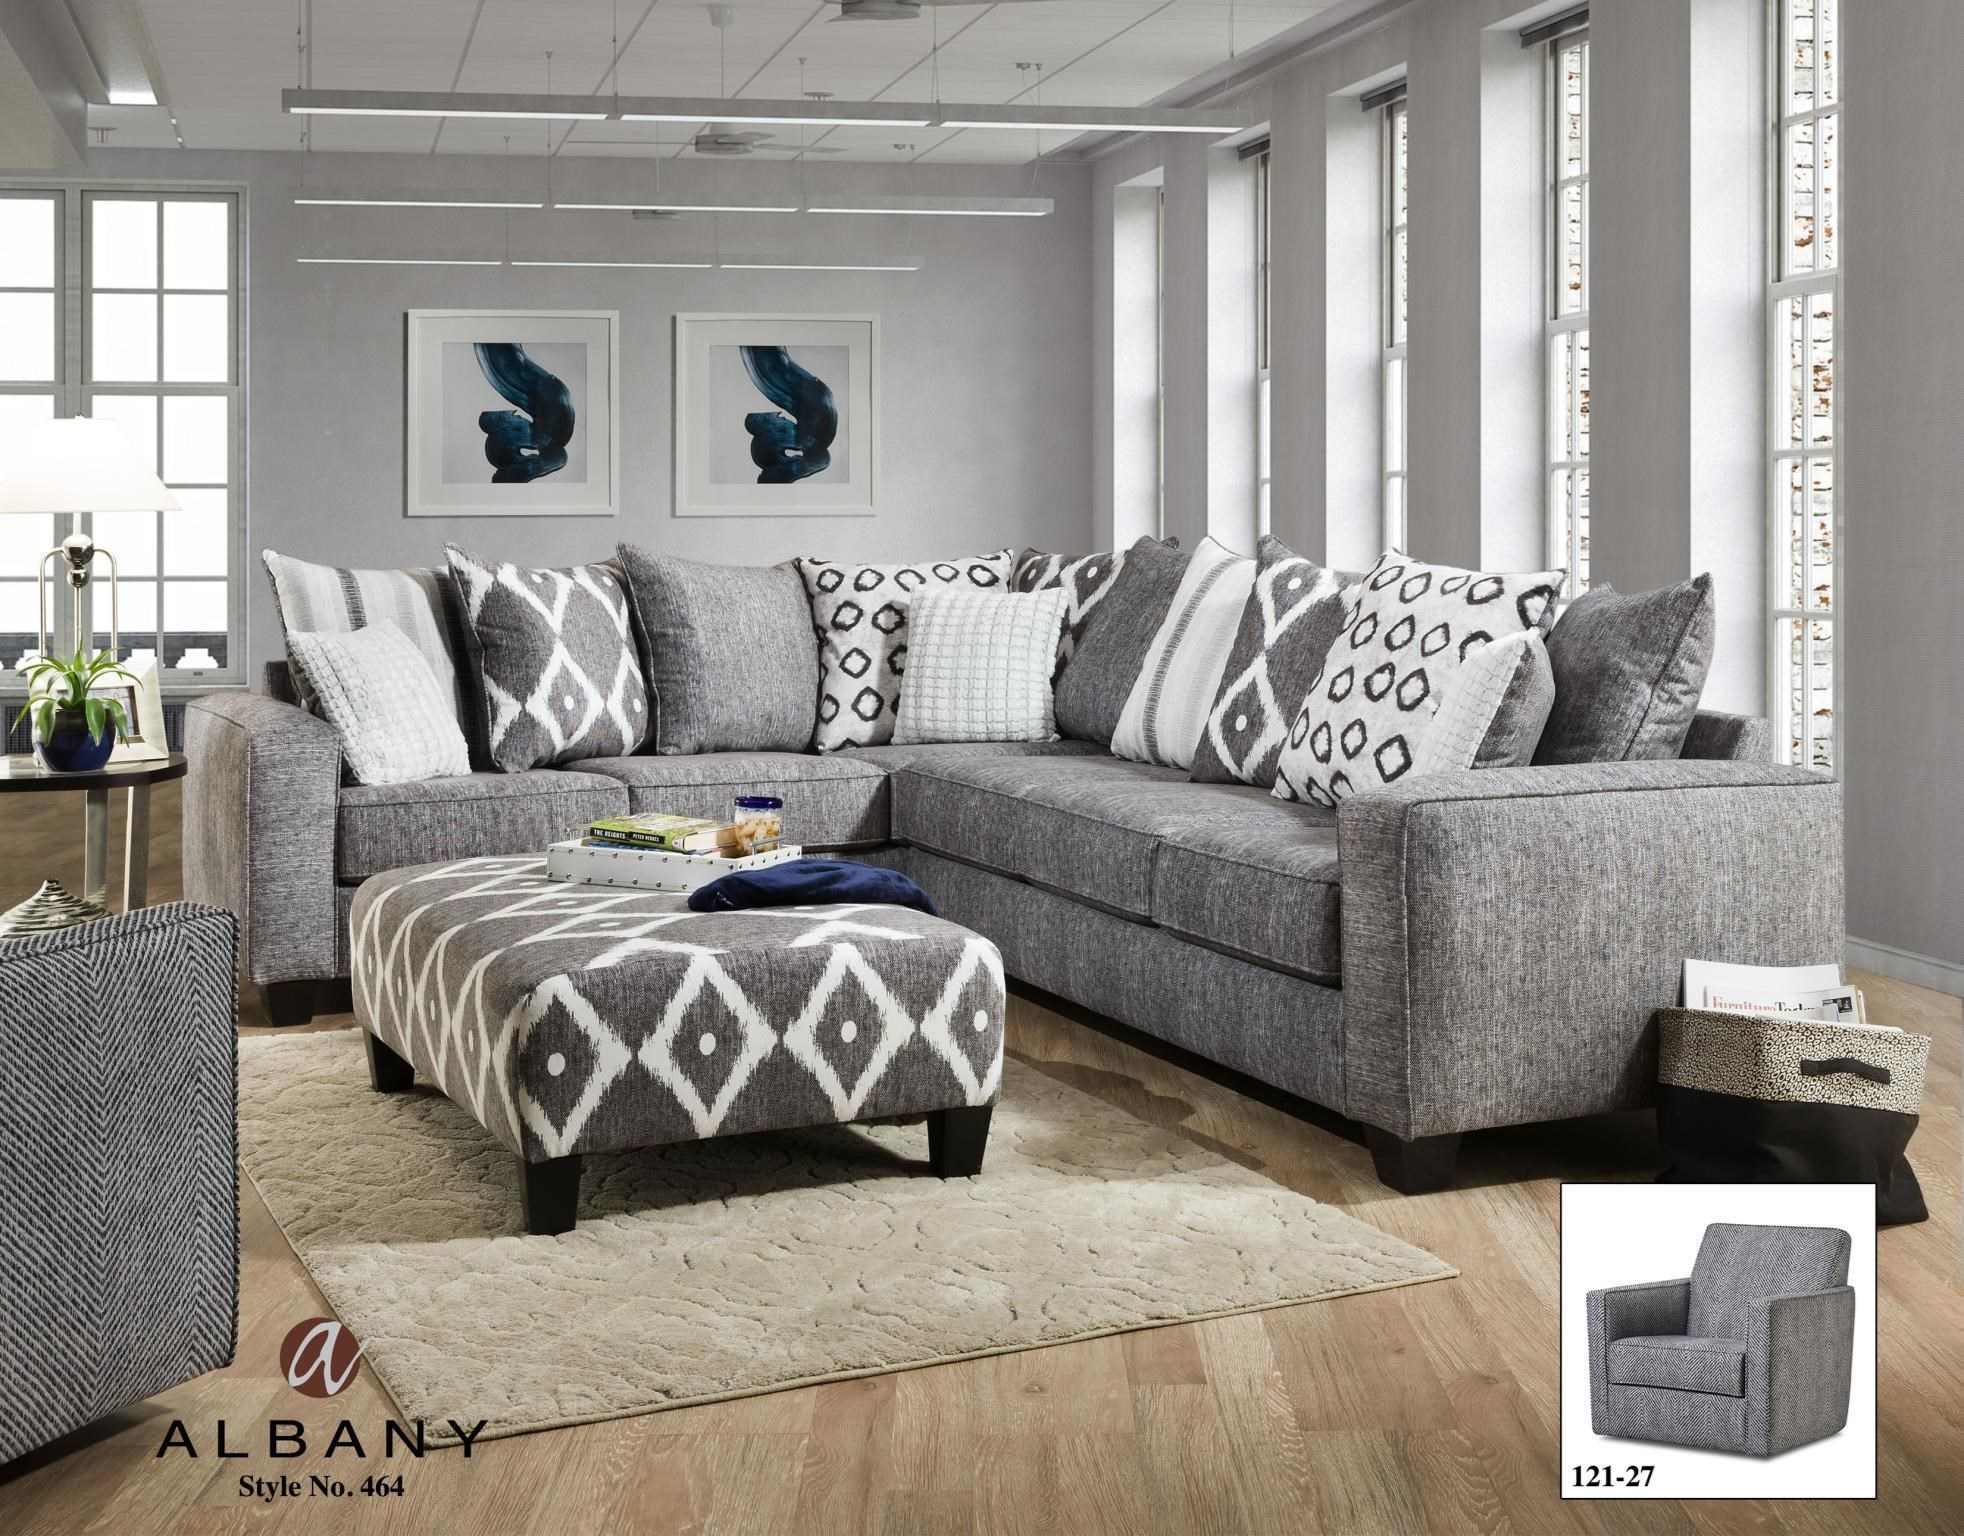 Albany 464 Sectional